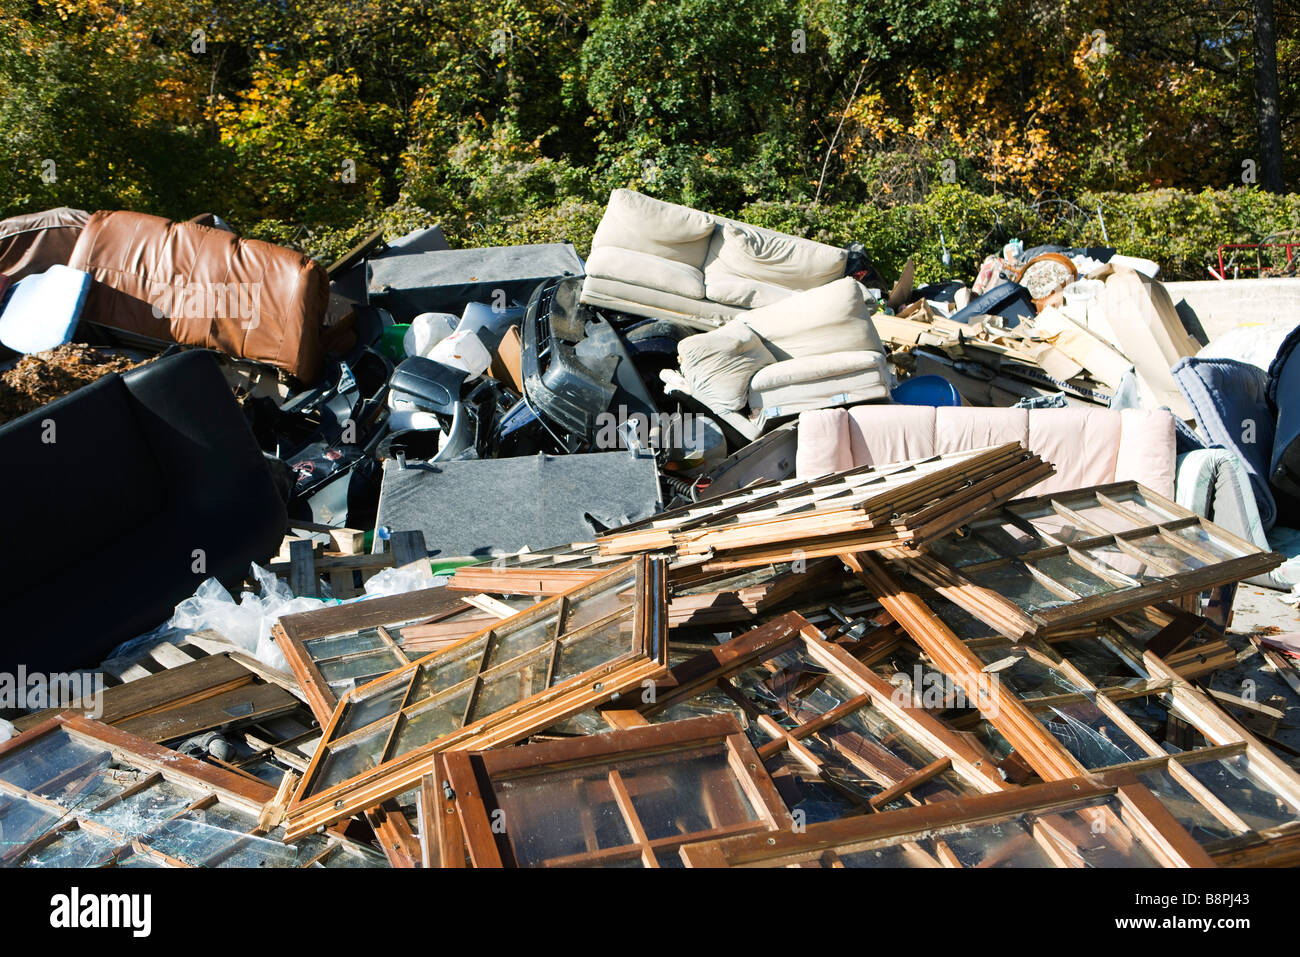 Discarded windows and furniture in large junk heap Stock Photo